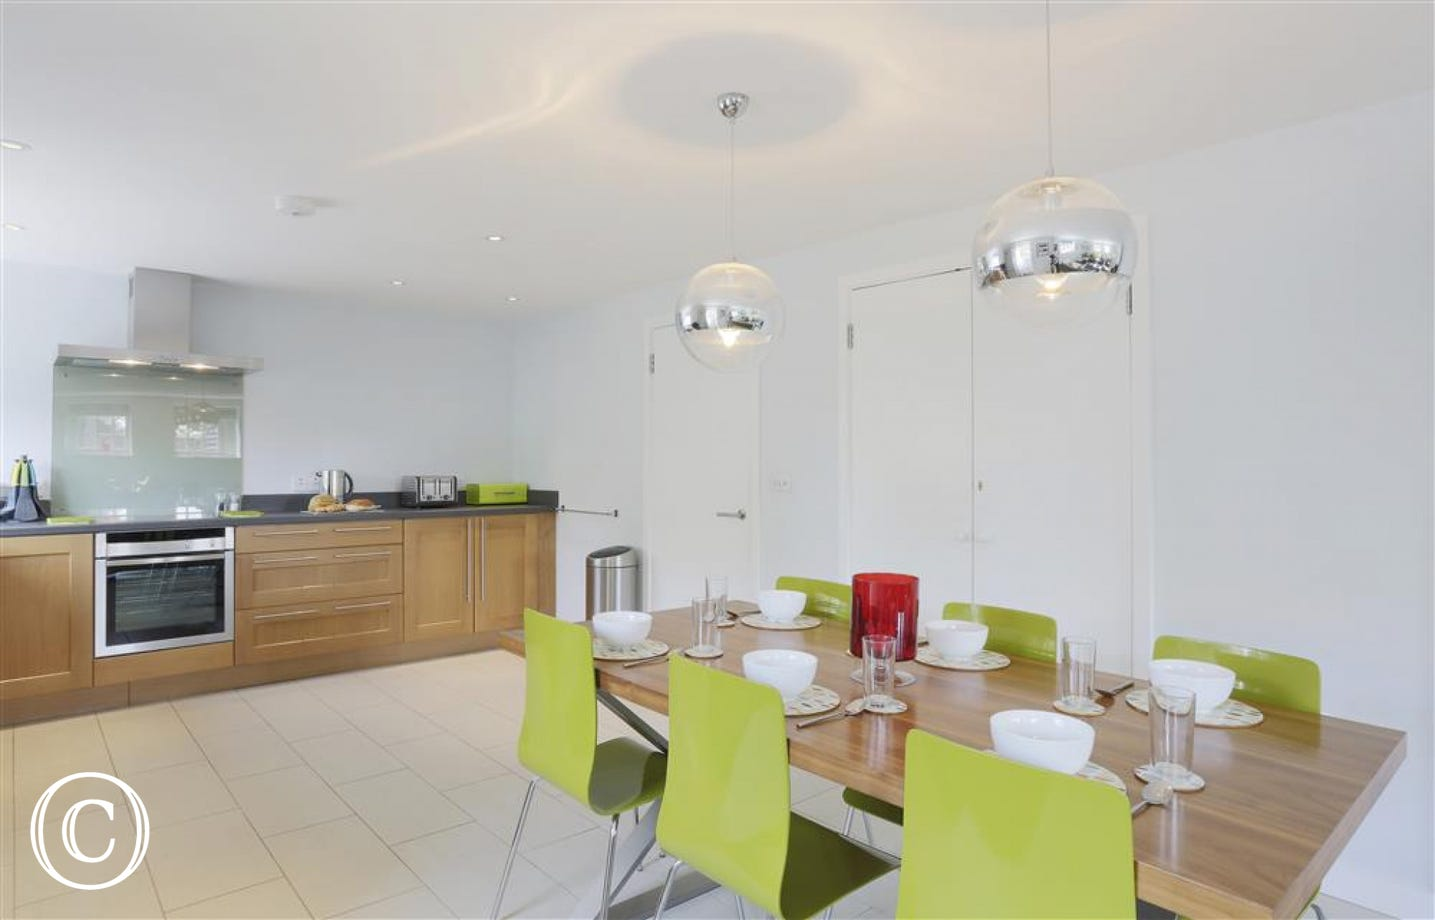 Open Plan Kitchen/Dining Area - View 1